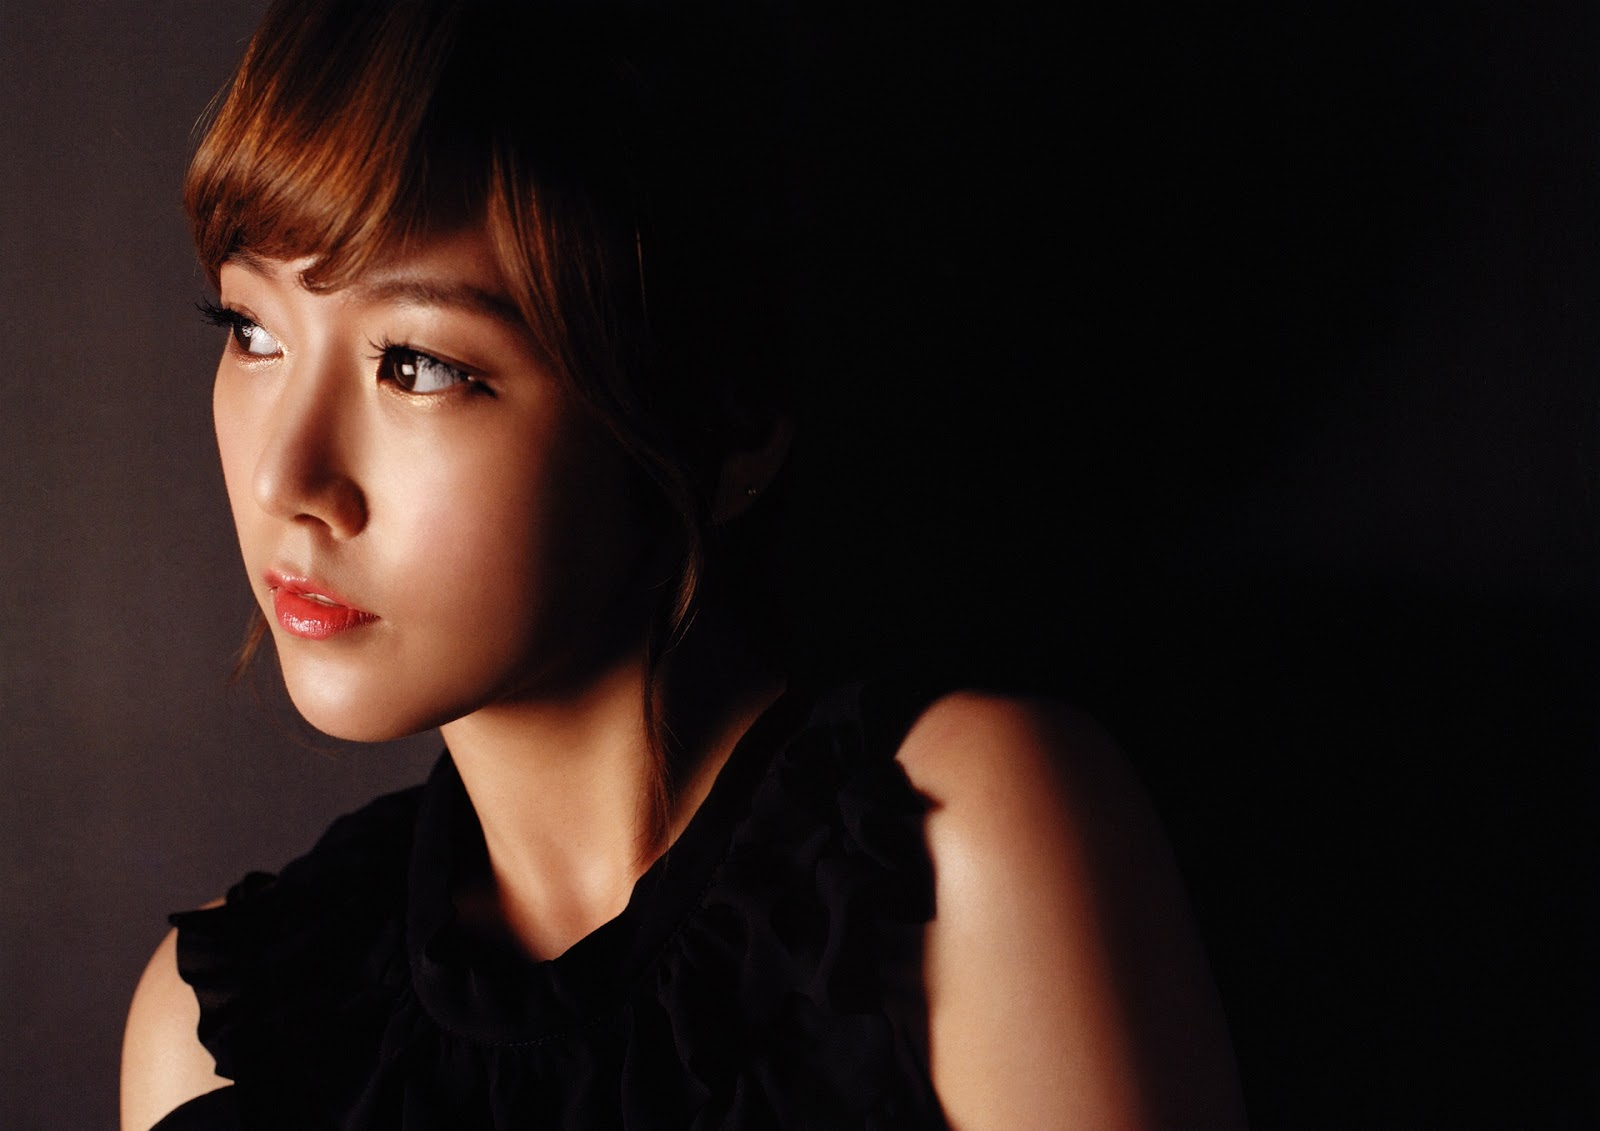 Soyeon t ara wallpaper hd hd wallon - T ara wallpaper hd ...